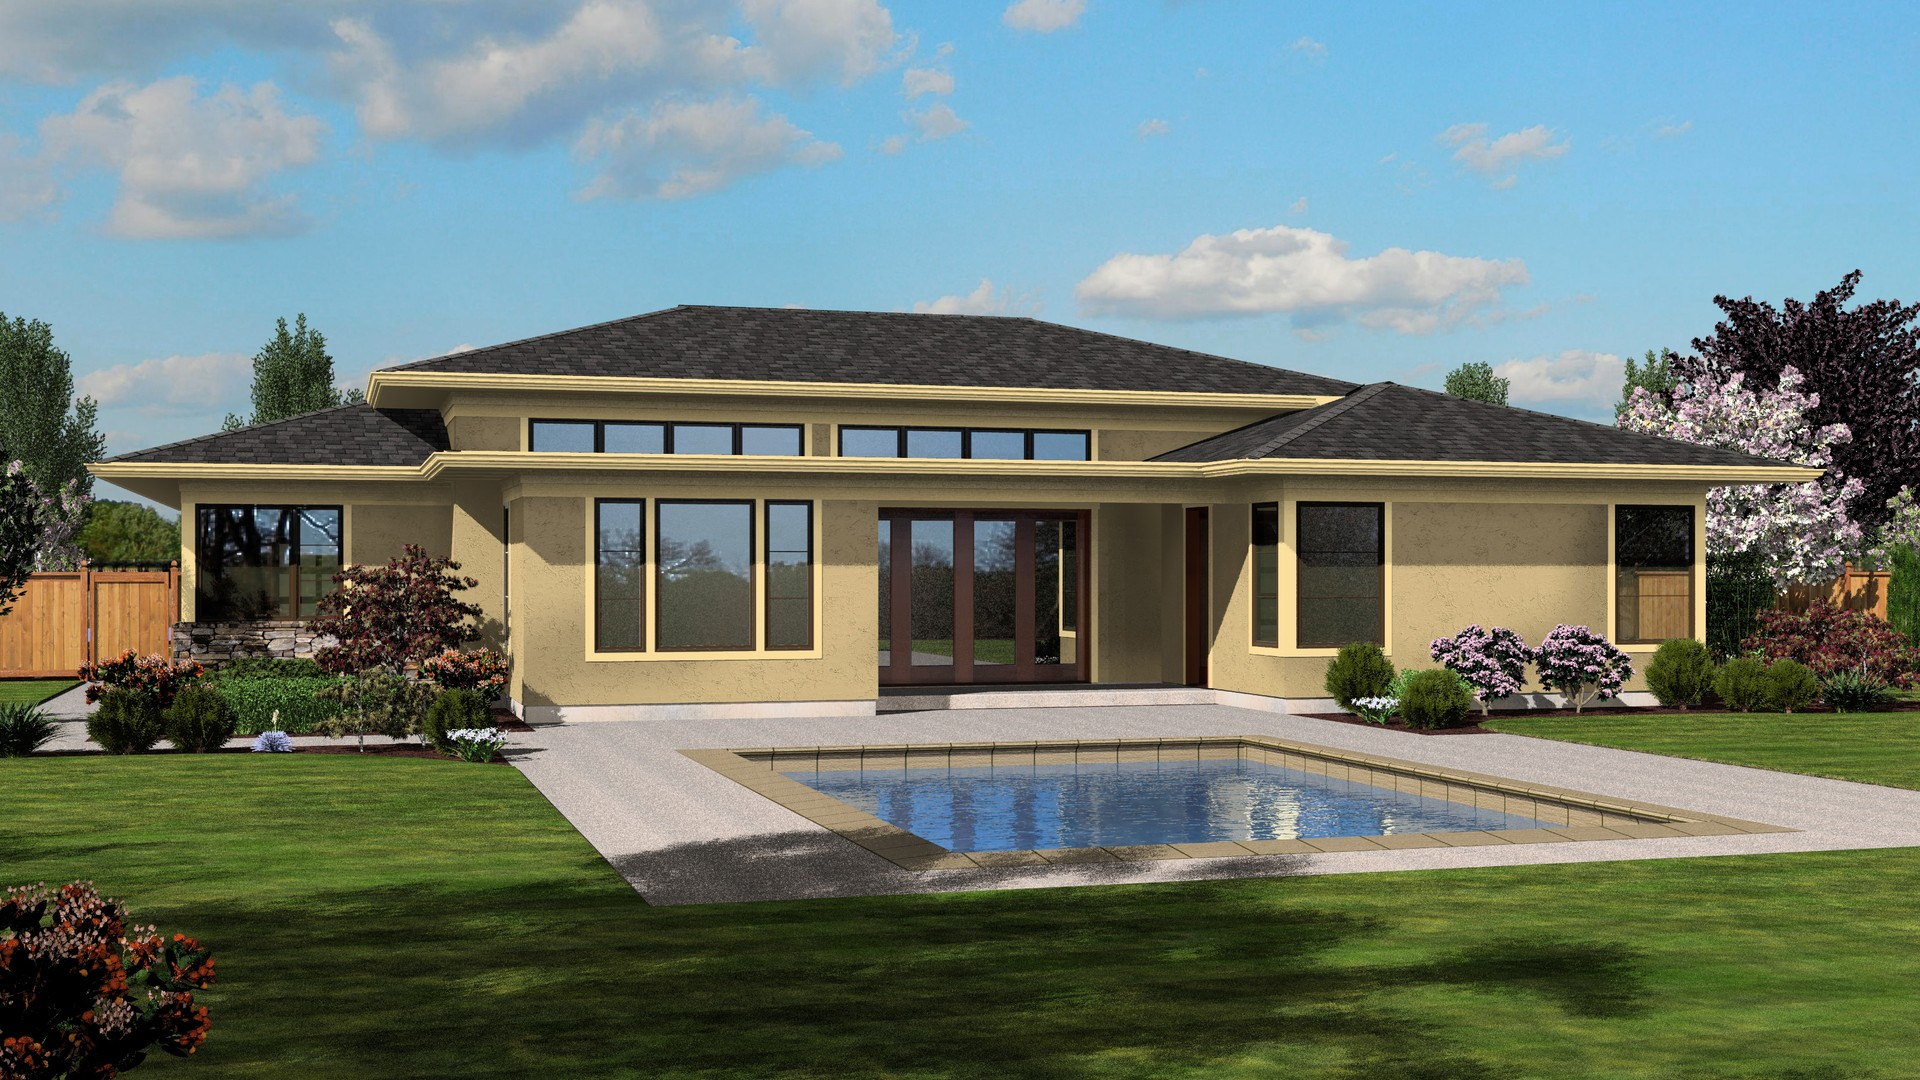 Contemporary house plan 1245 the riverside 2334 sqft 4 Home design latest